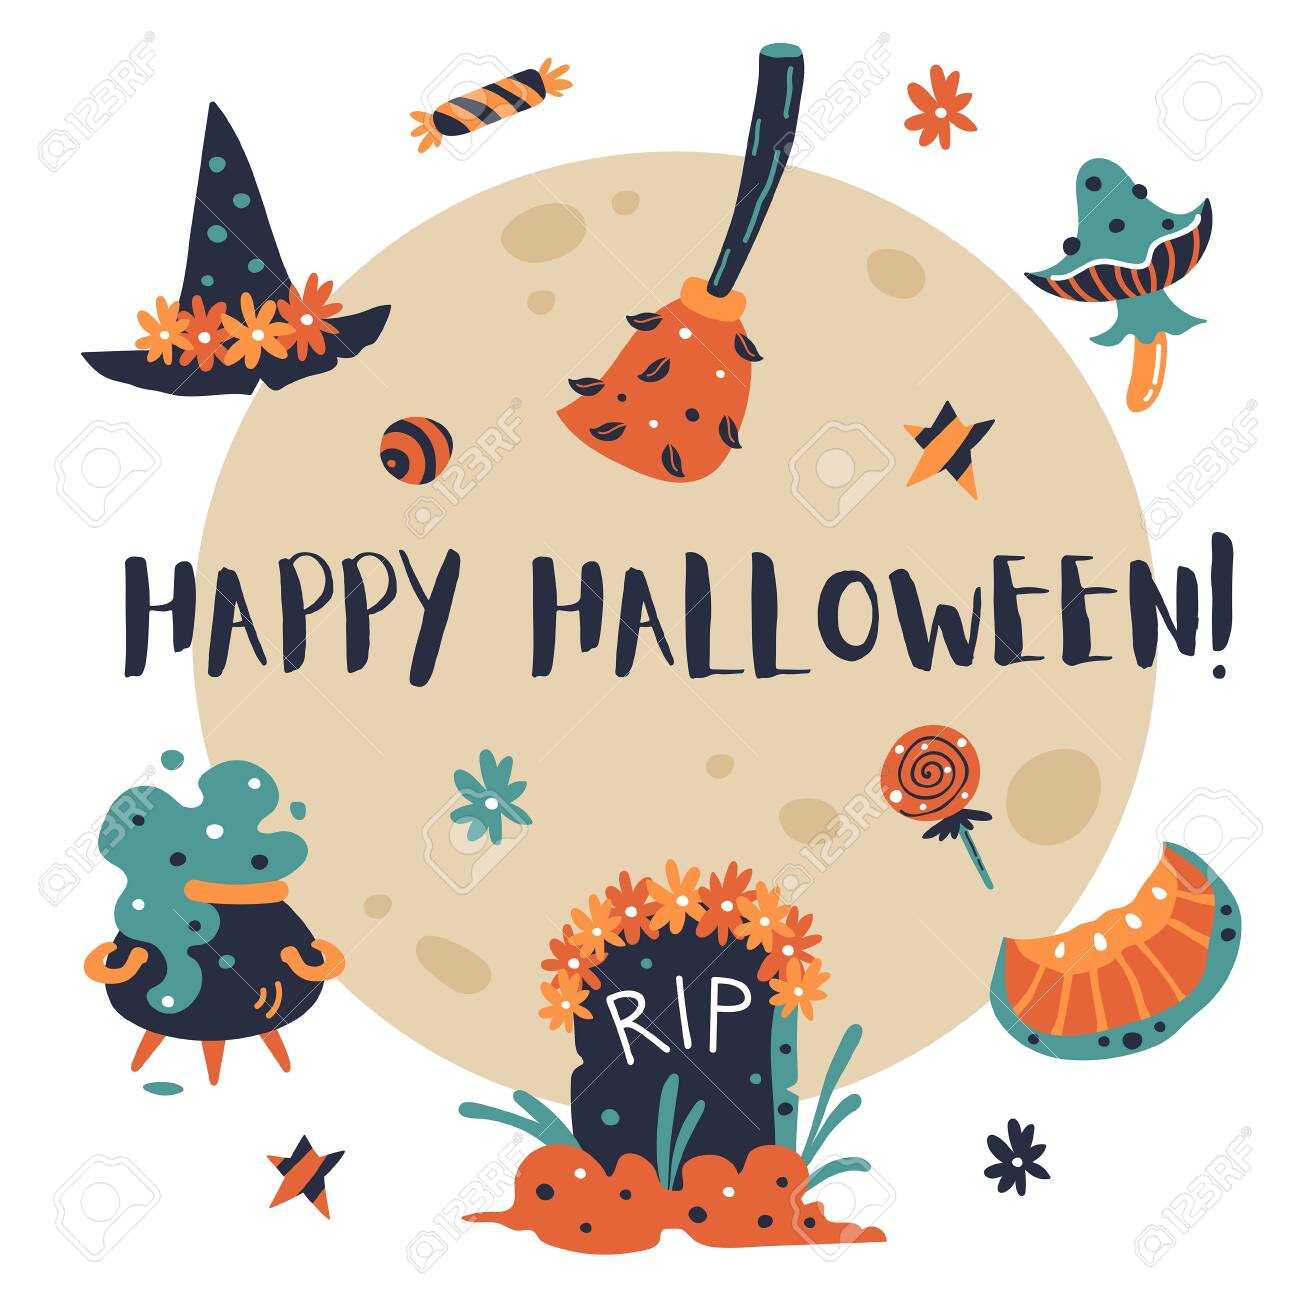 Happy Halloween Design Elements. Halloween Clipart With Witch.. Royalty  Free Cliparts, Vectors, And Stock Illustration. Image 134584145.